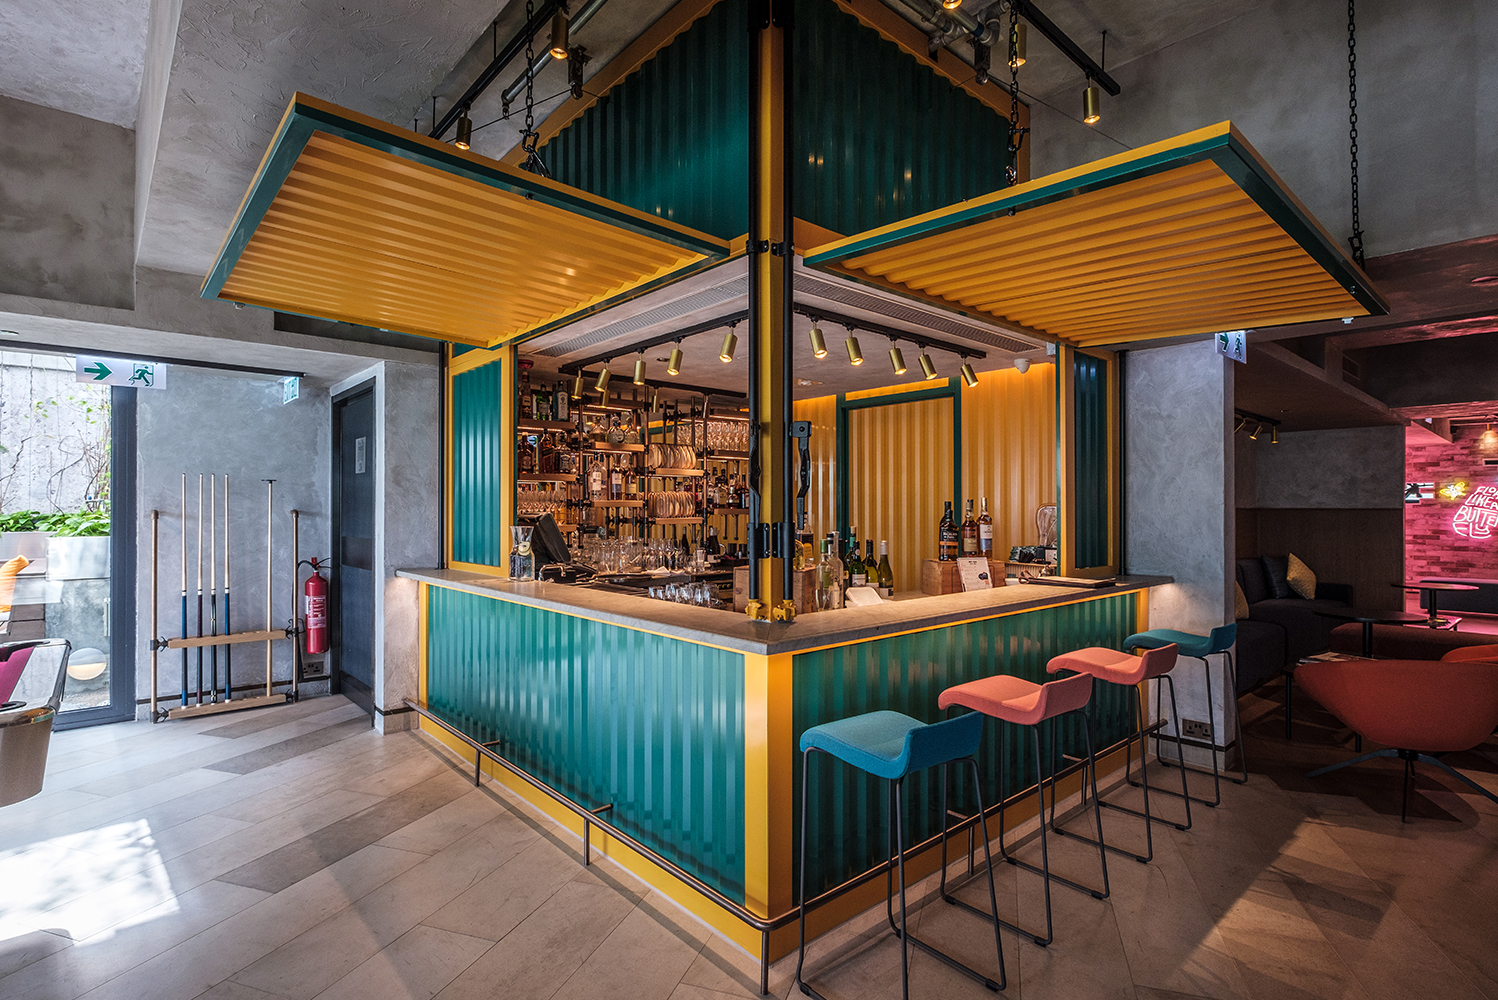 The container bar, one of two bars in the hotel, is made of corrugated metal and decorated with bright colors, paying homage to the shipping history of the area.